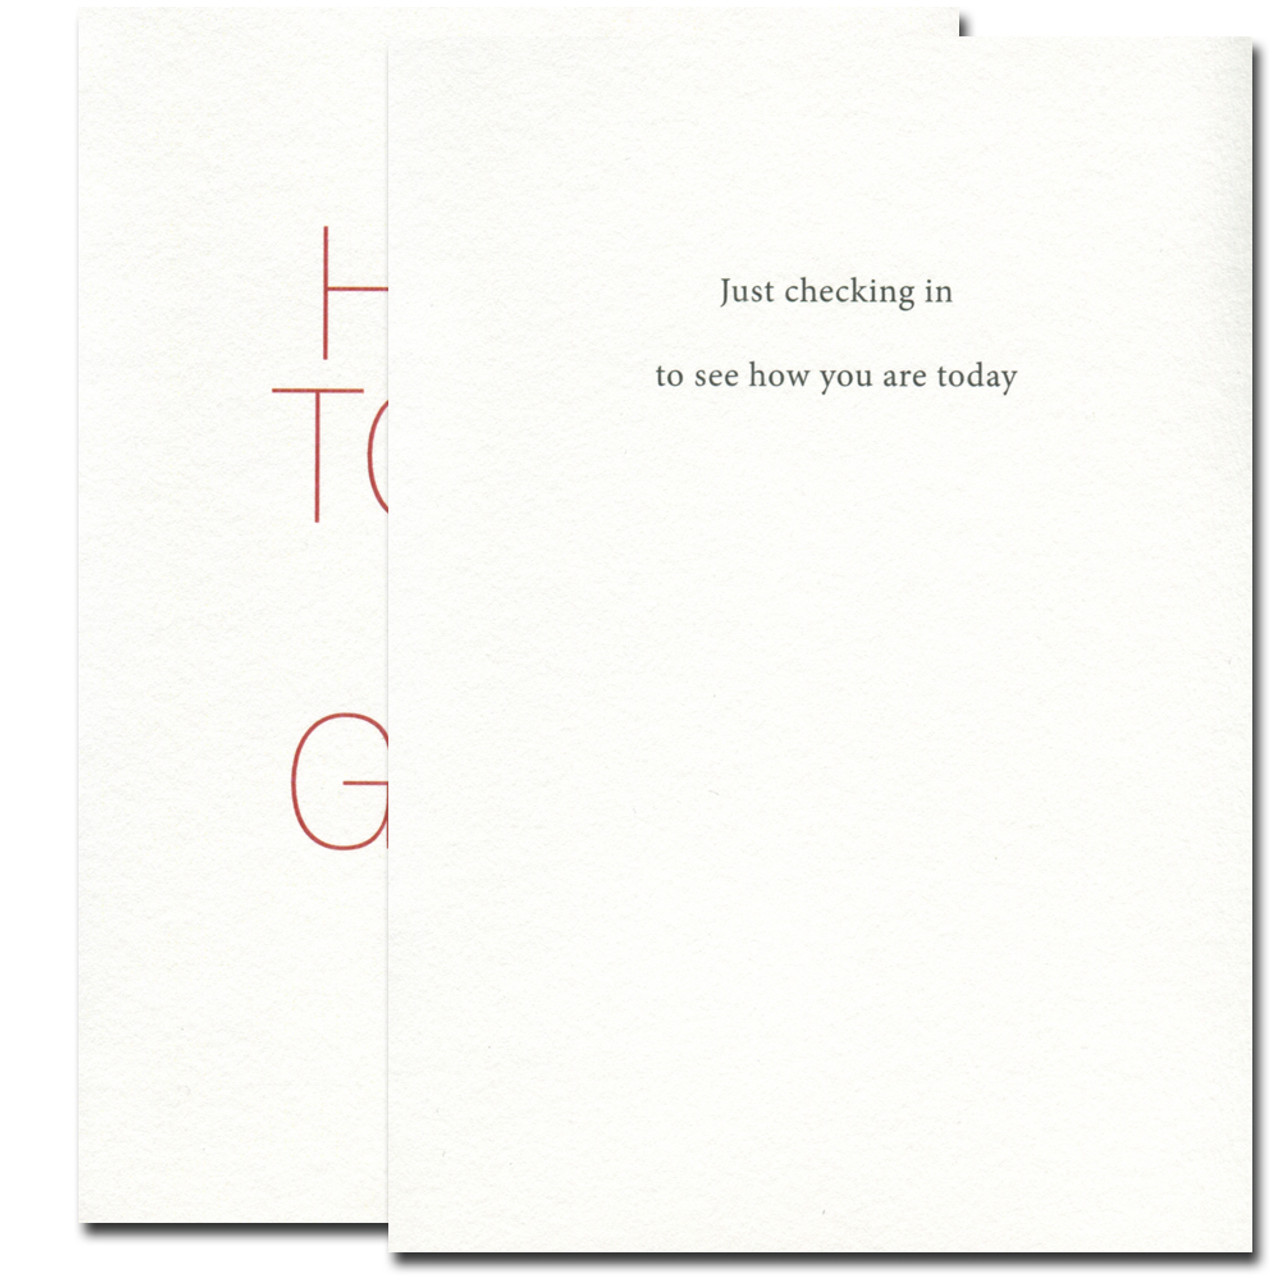 Inside of Thinking of You Card reads: Just checking in to see how you are today